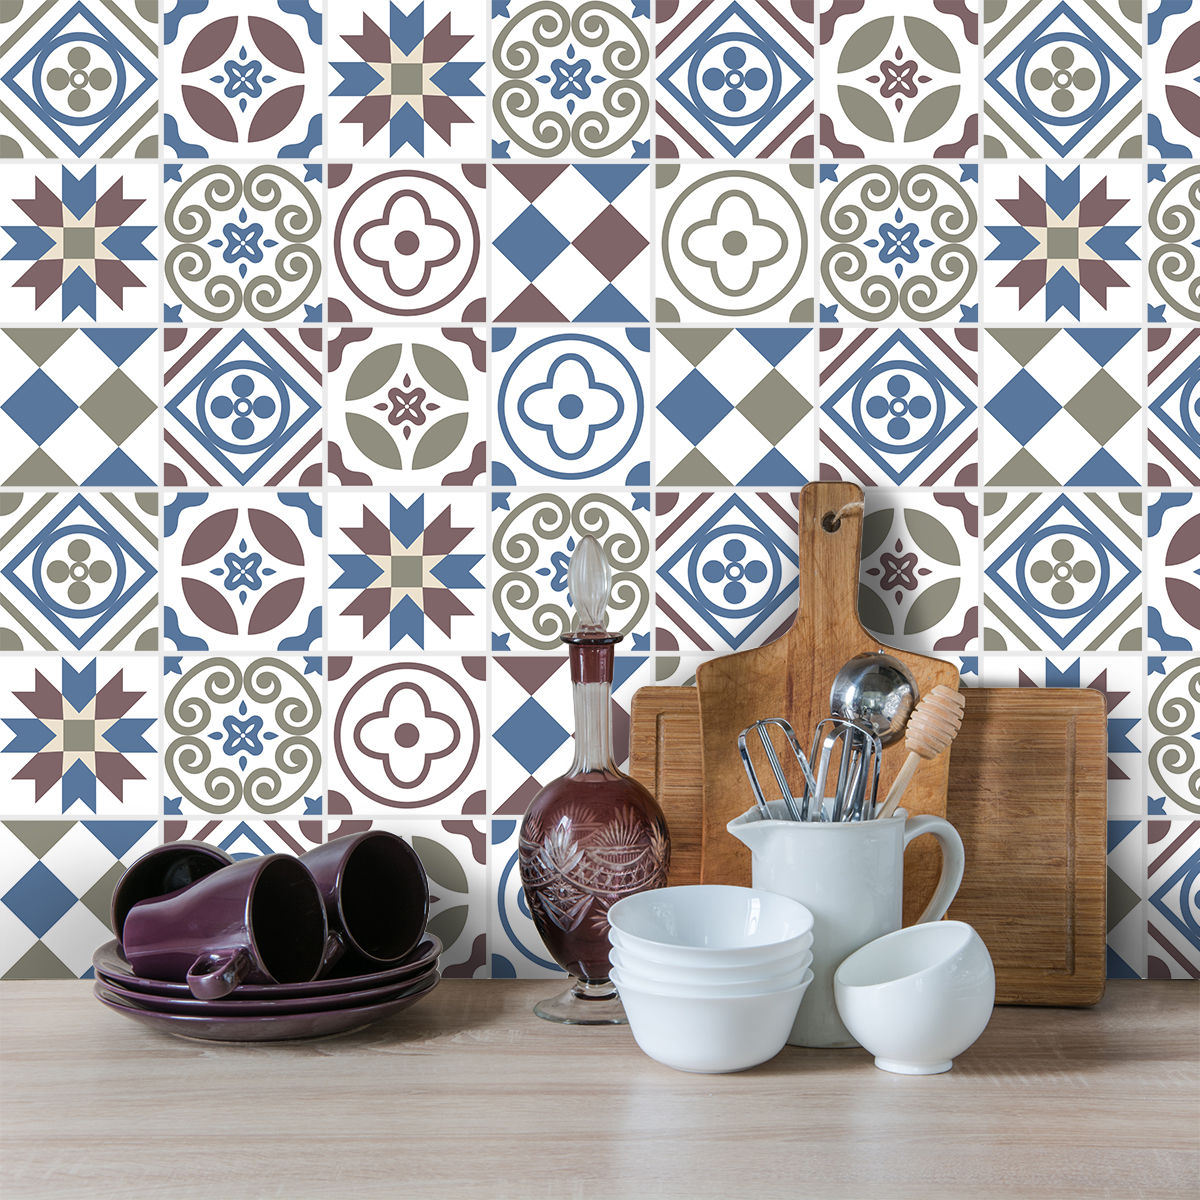 9 stickers carreaux de ciment azulejos liticina cuisine carrelages ambiance sticker. Black Bedroom Furniture Sets. Home Design Ideas